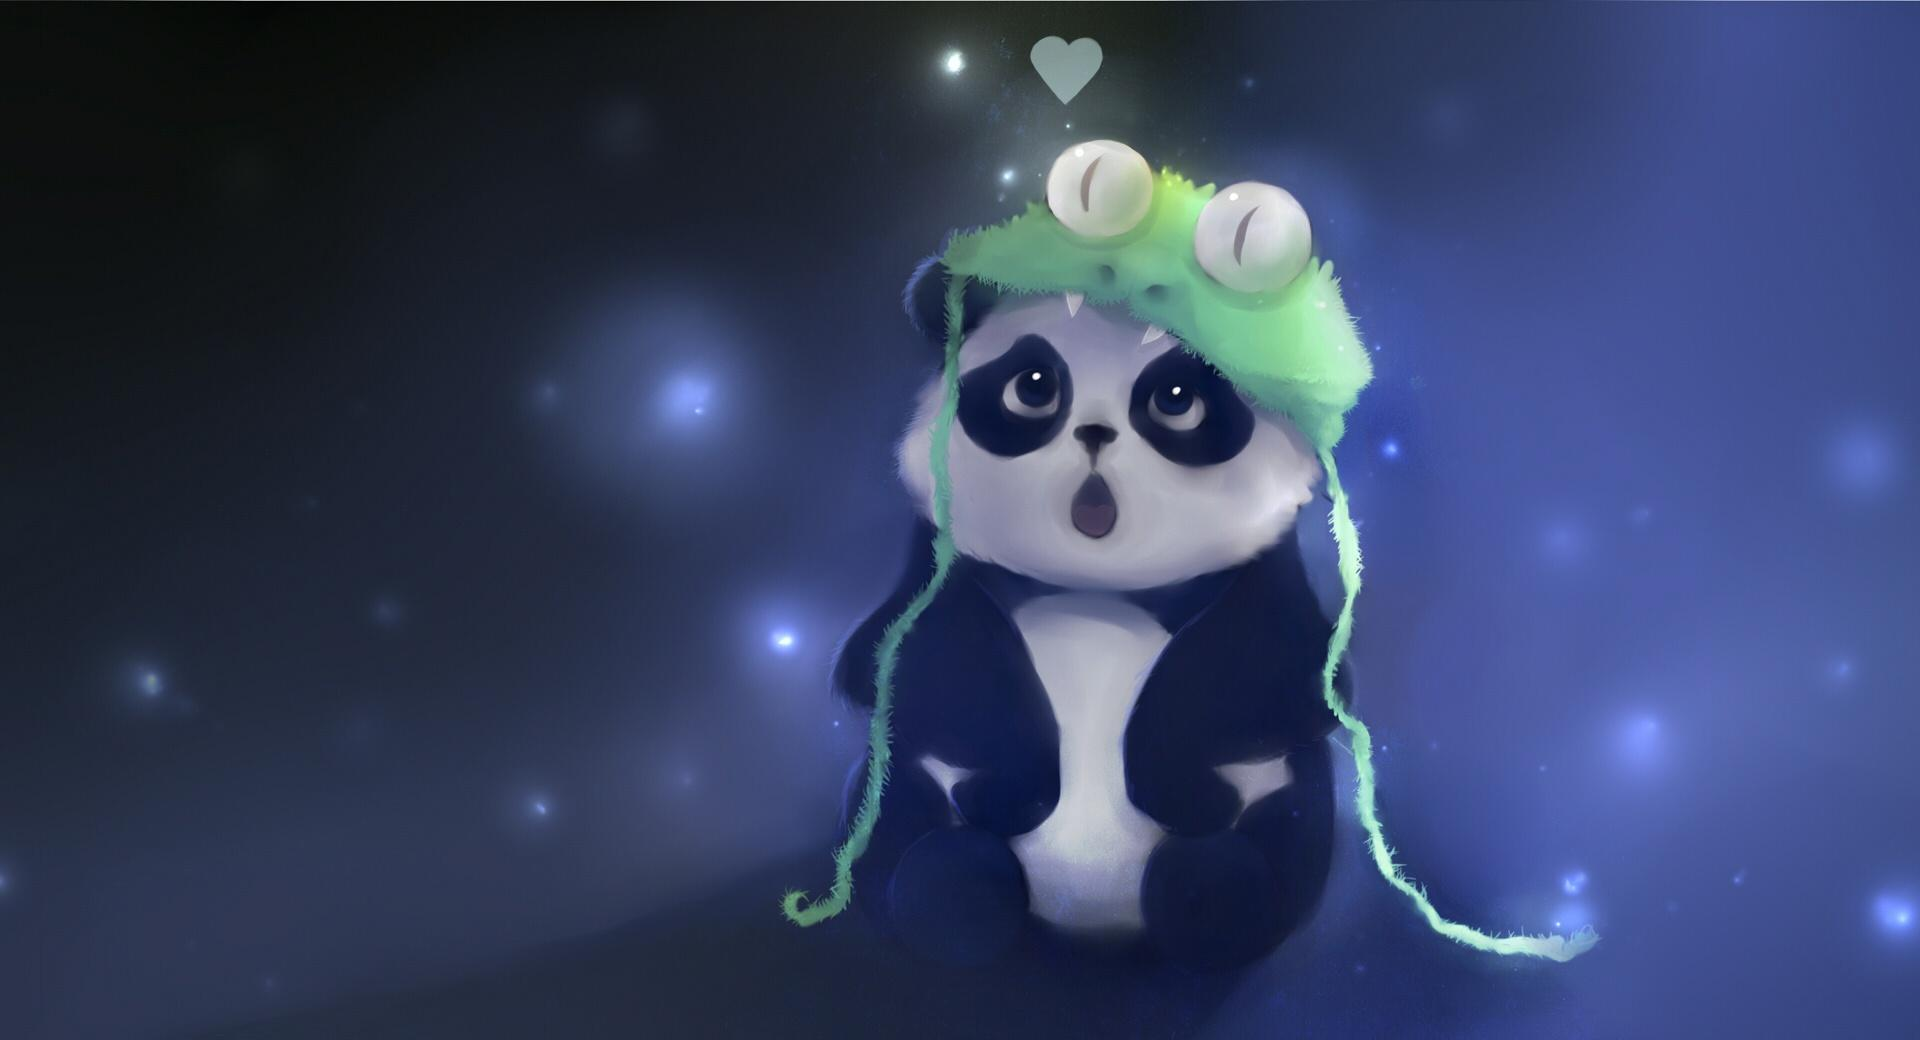 Cute Panda Painting wallpapers HD quality